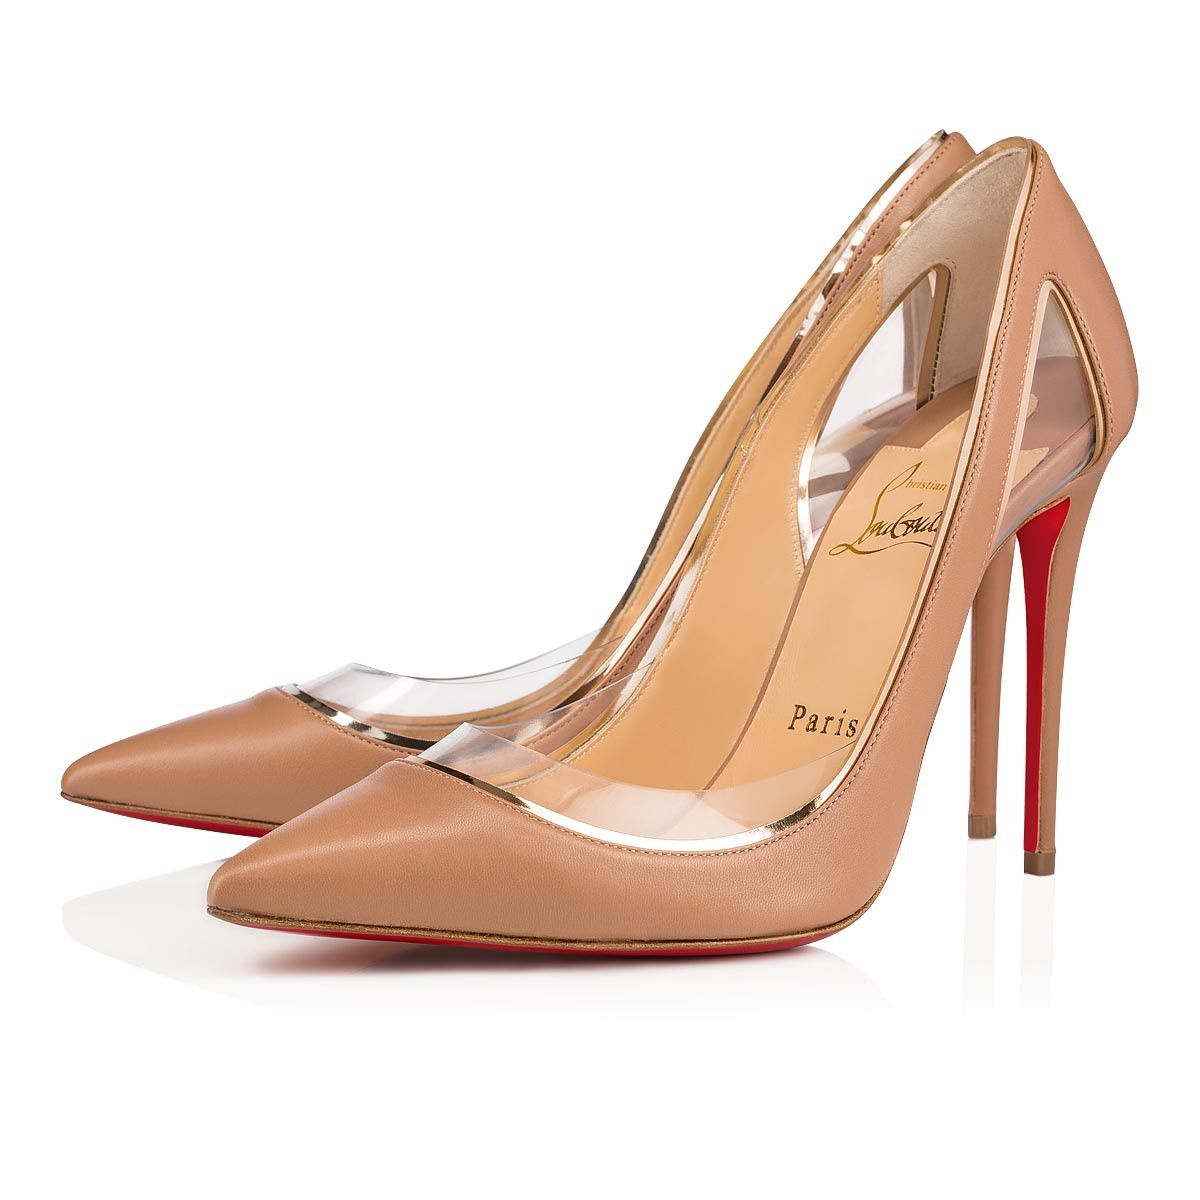 a7c77a5e43f Cosmo 554 100 Nude Leather - Women Shoes - Christian Louboutin ...